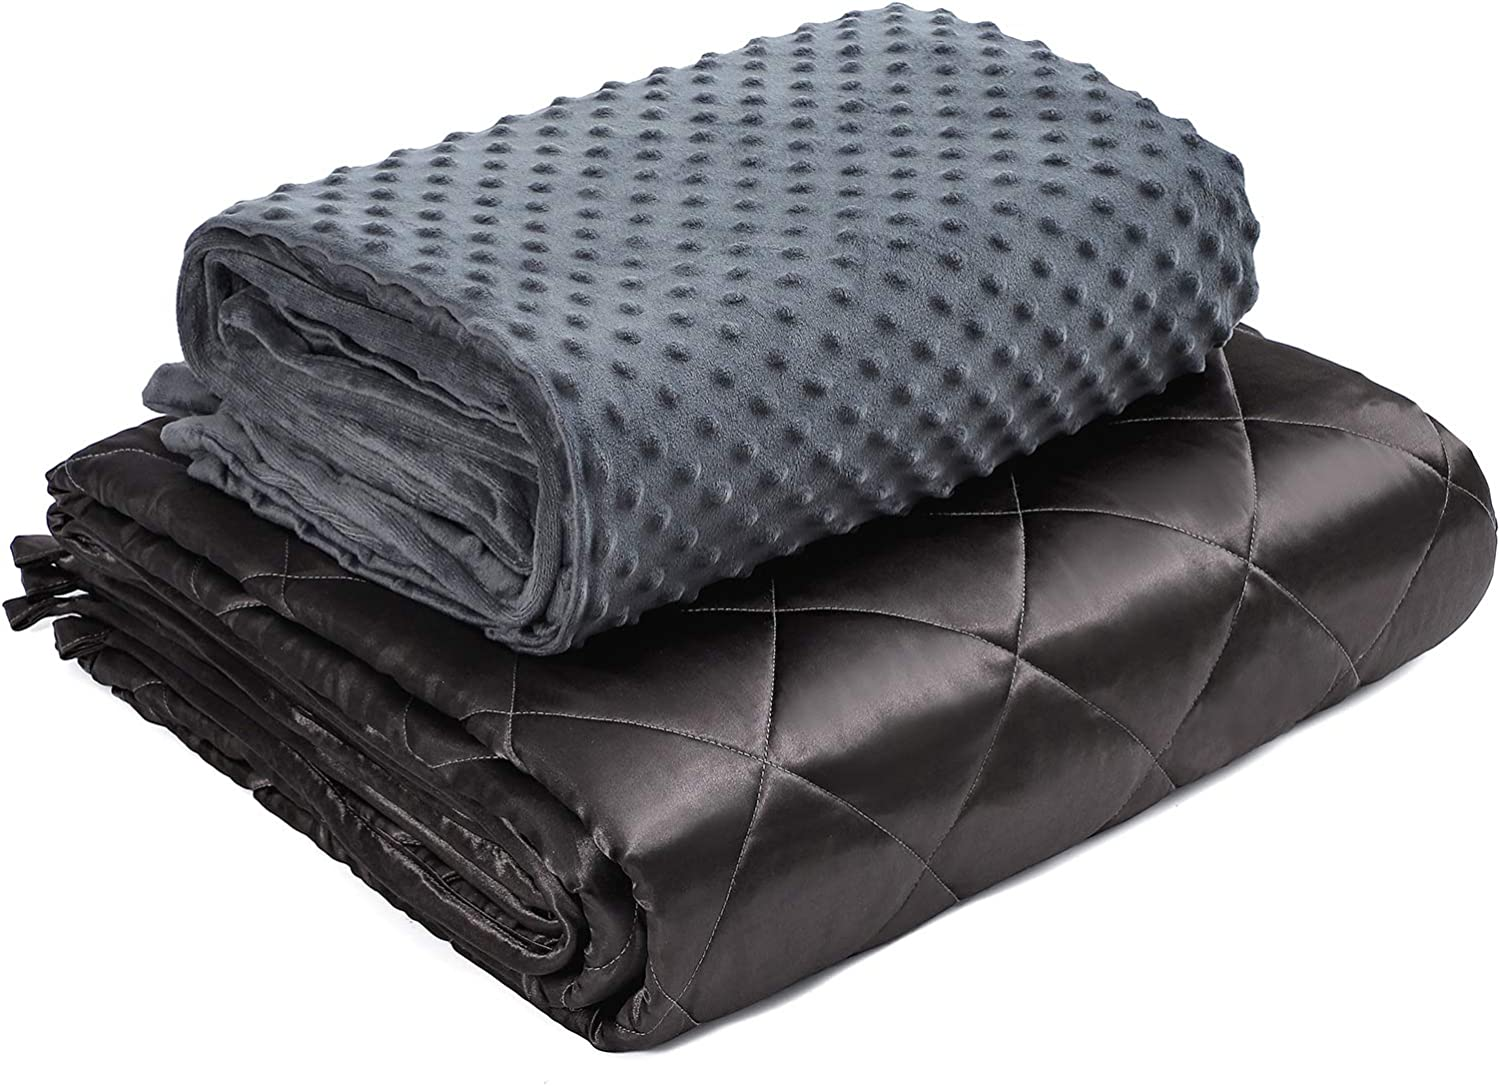 Argstar Breathable Silky Satin 与え Removable Blanket 国際ブランド Warm Weighted